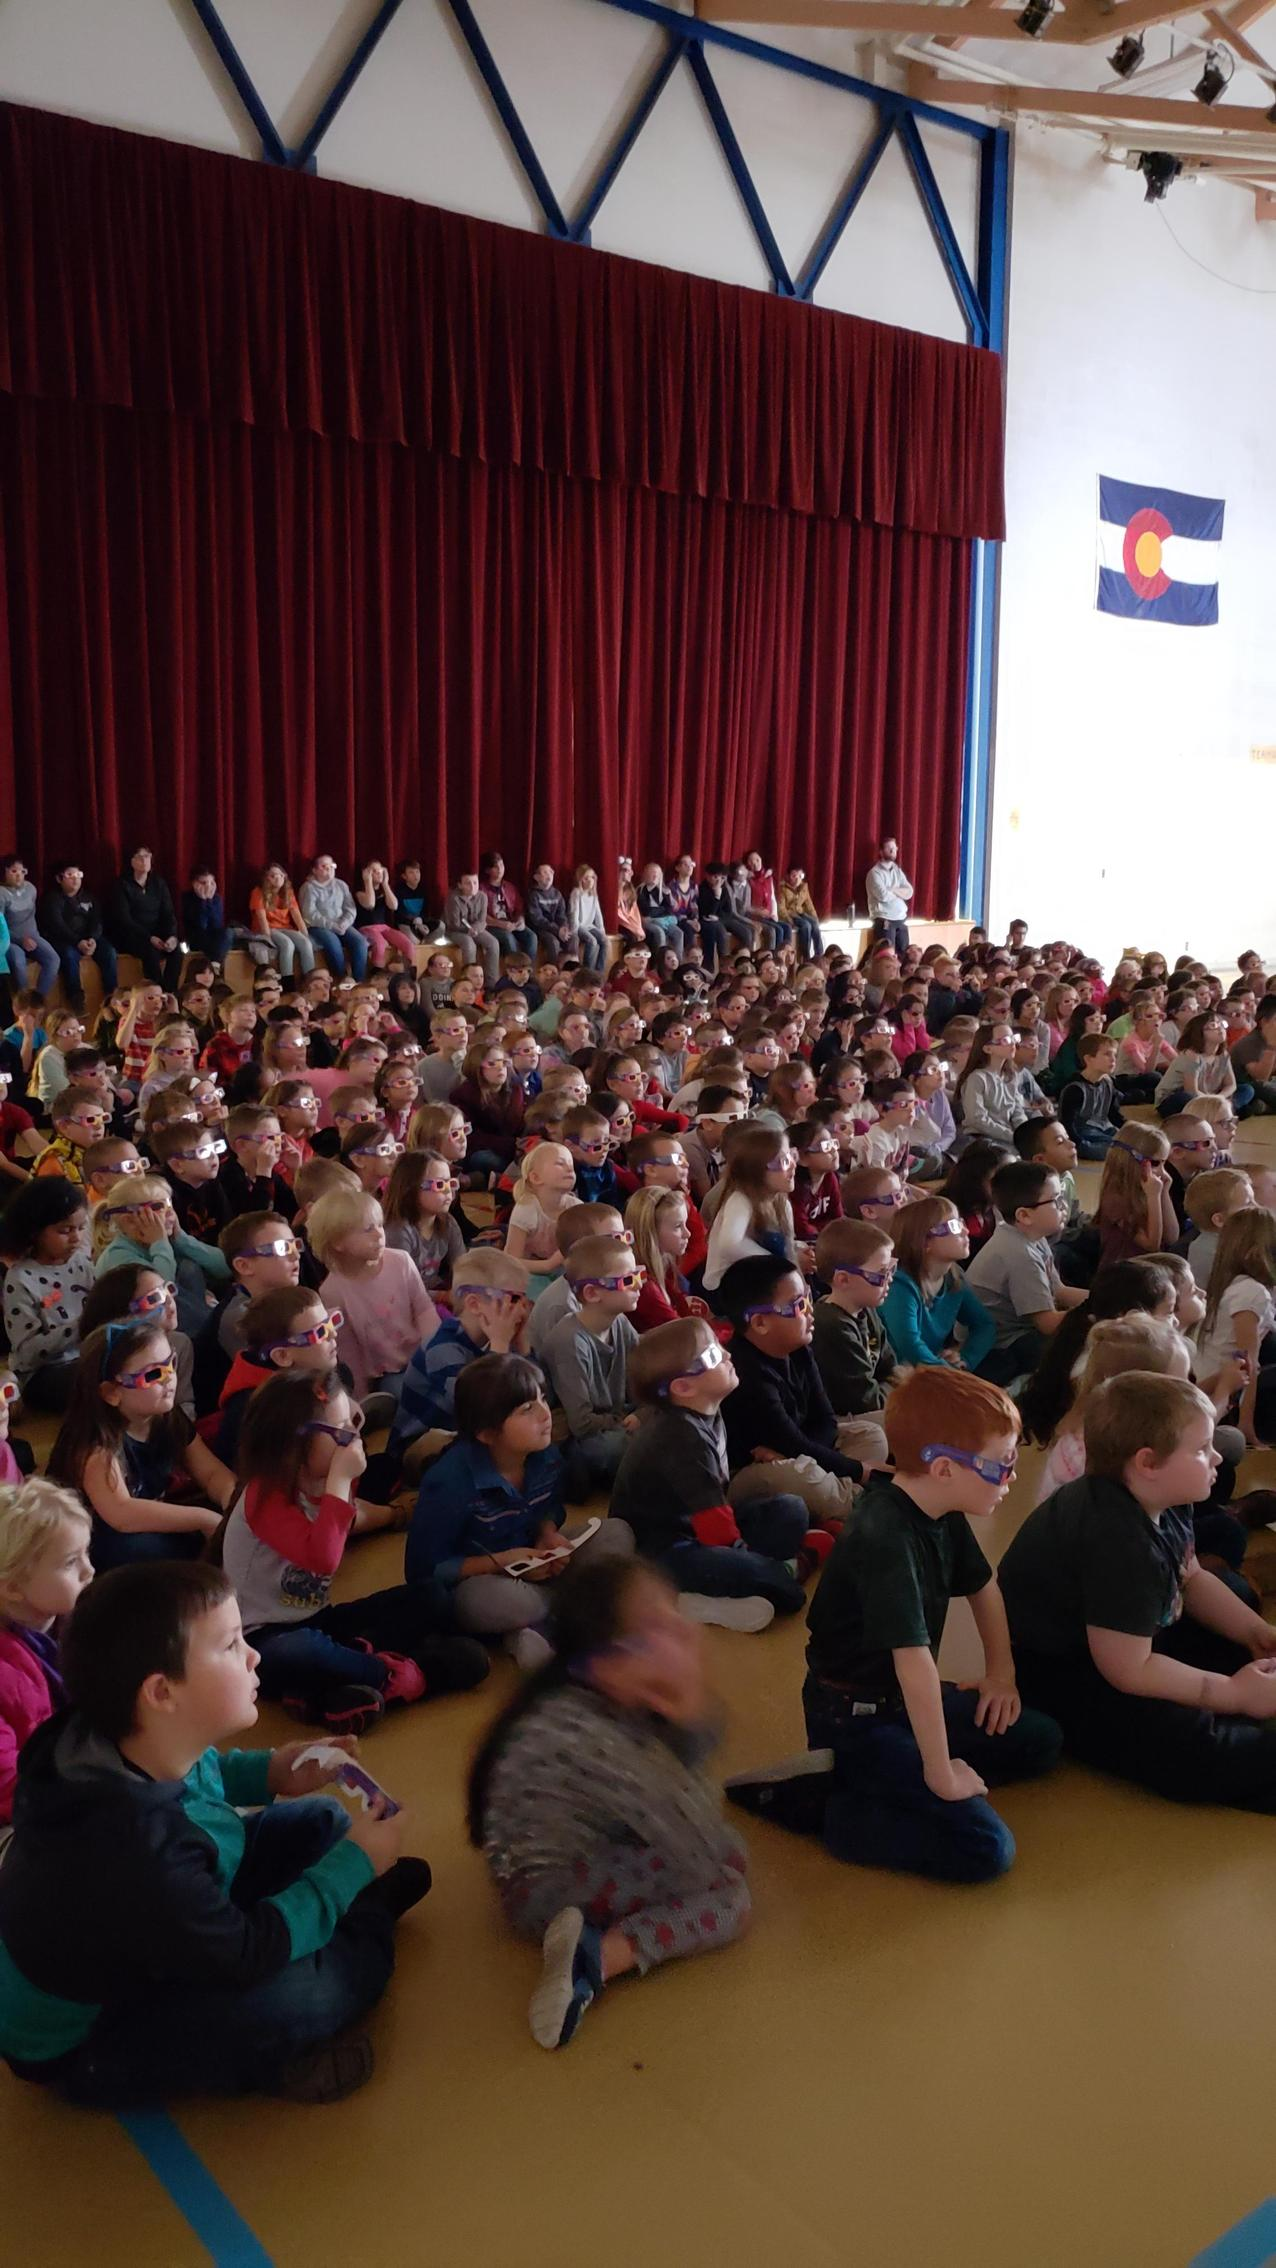 Students using 3D glasses in assembly for Kids Heart Challenve